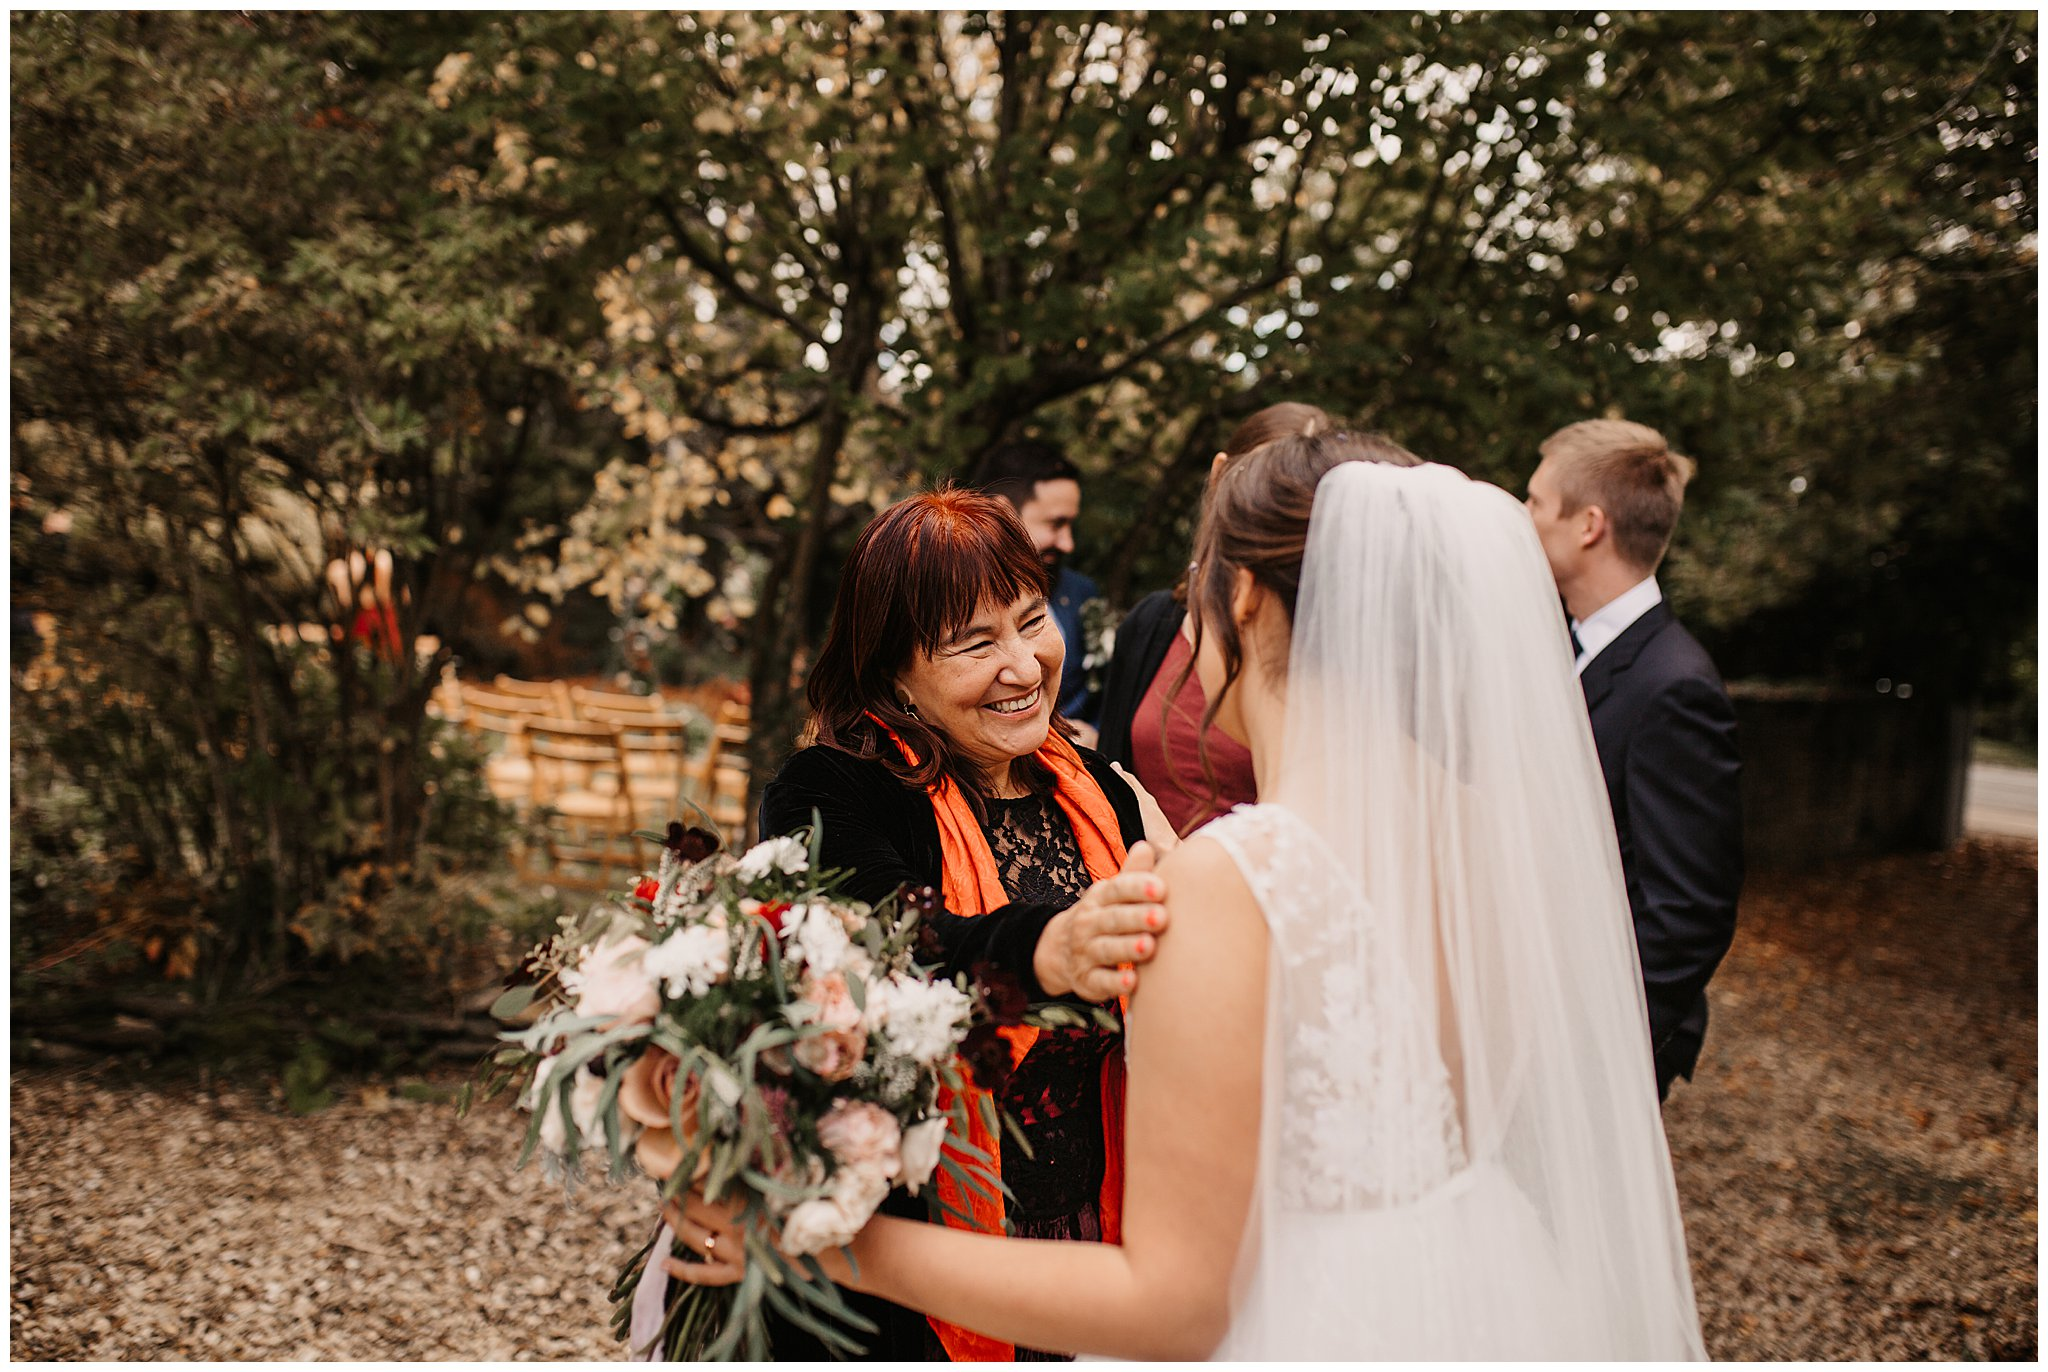 Max & Ksenia Autumnal Wiltshire Wedding-331.jpg